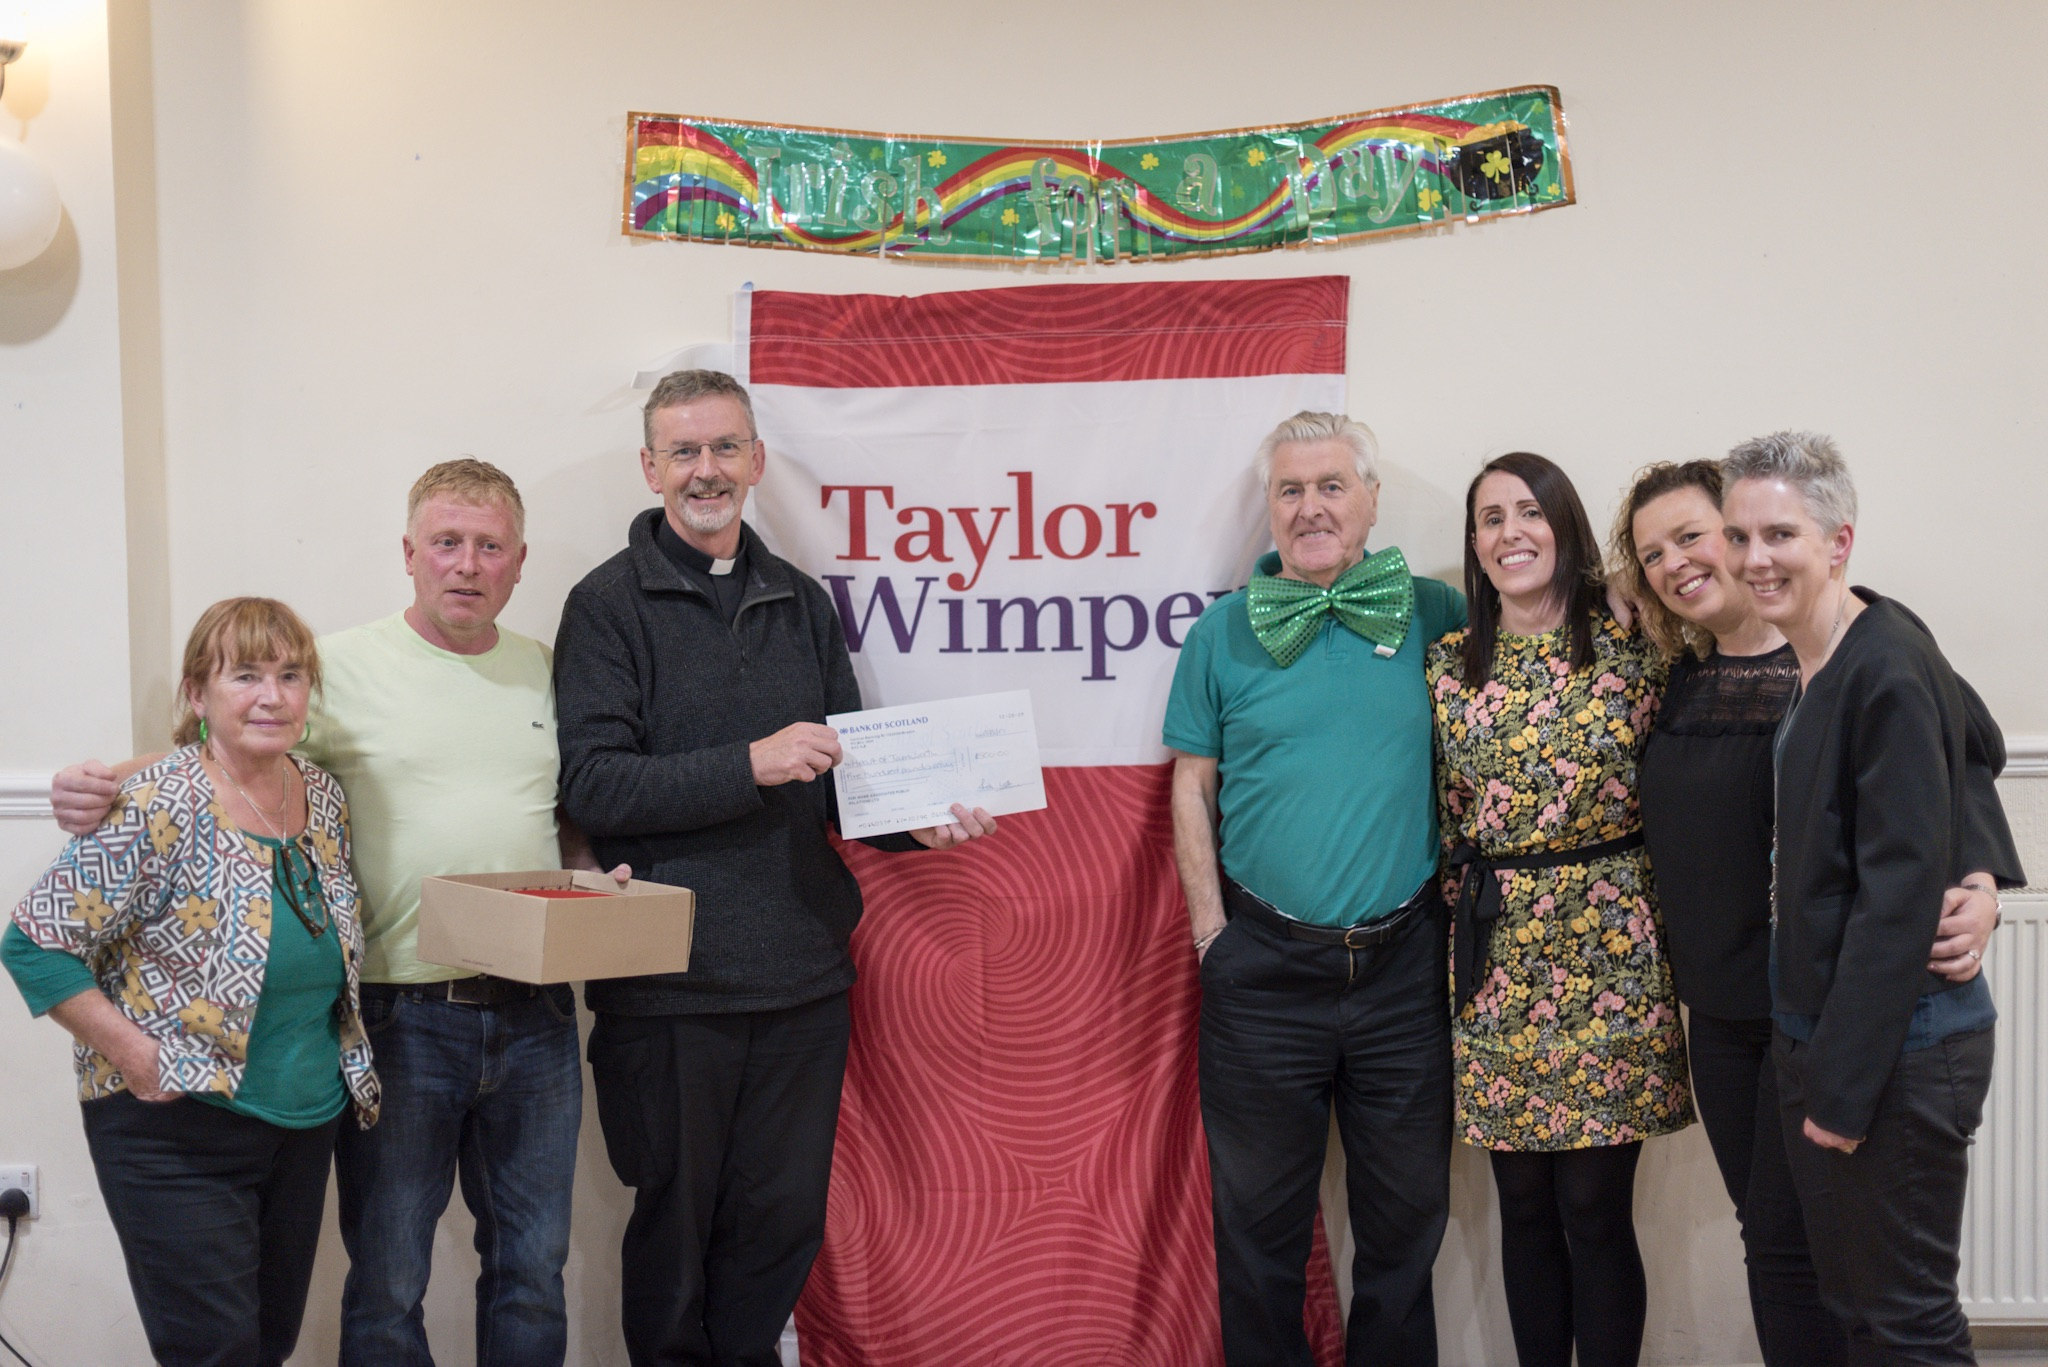 Heart of Tamworth - Taylor Wimpey Sponsorship